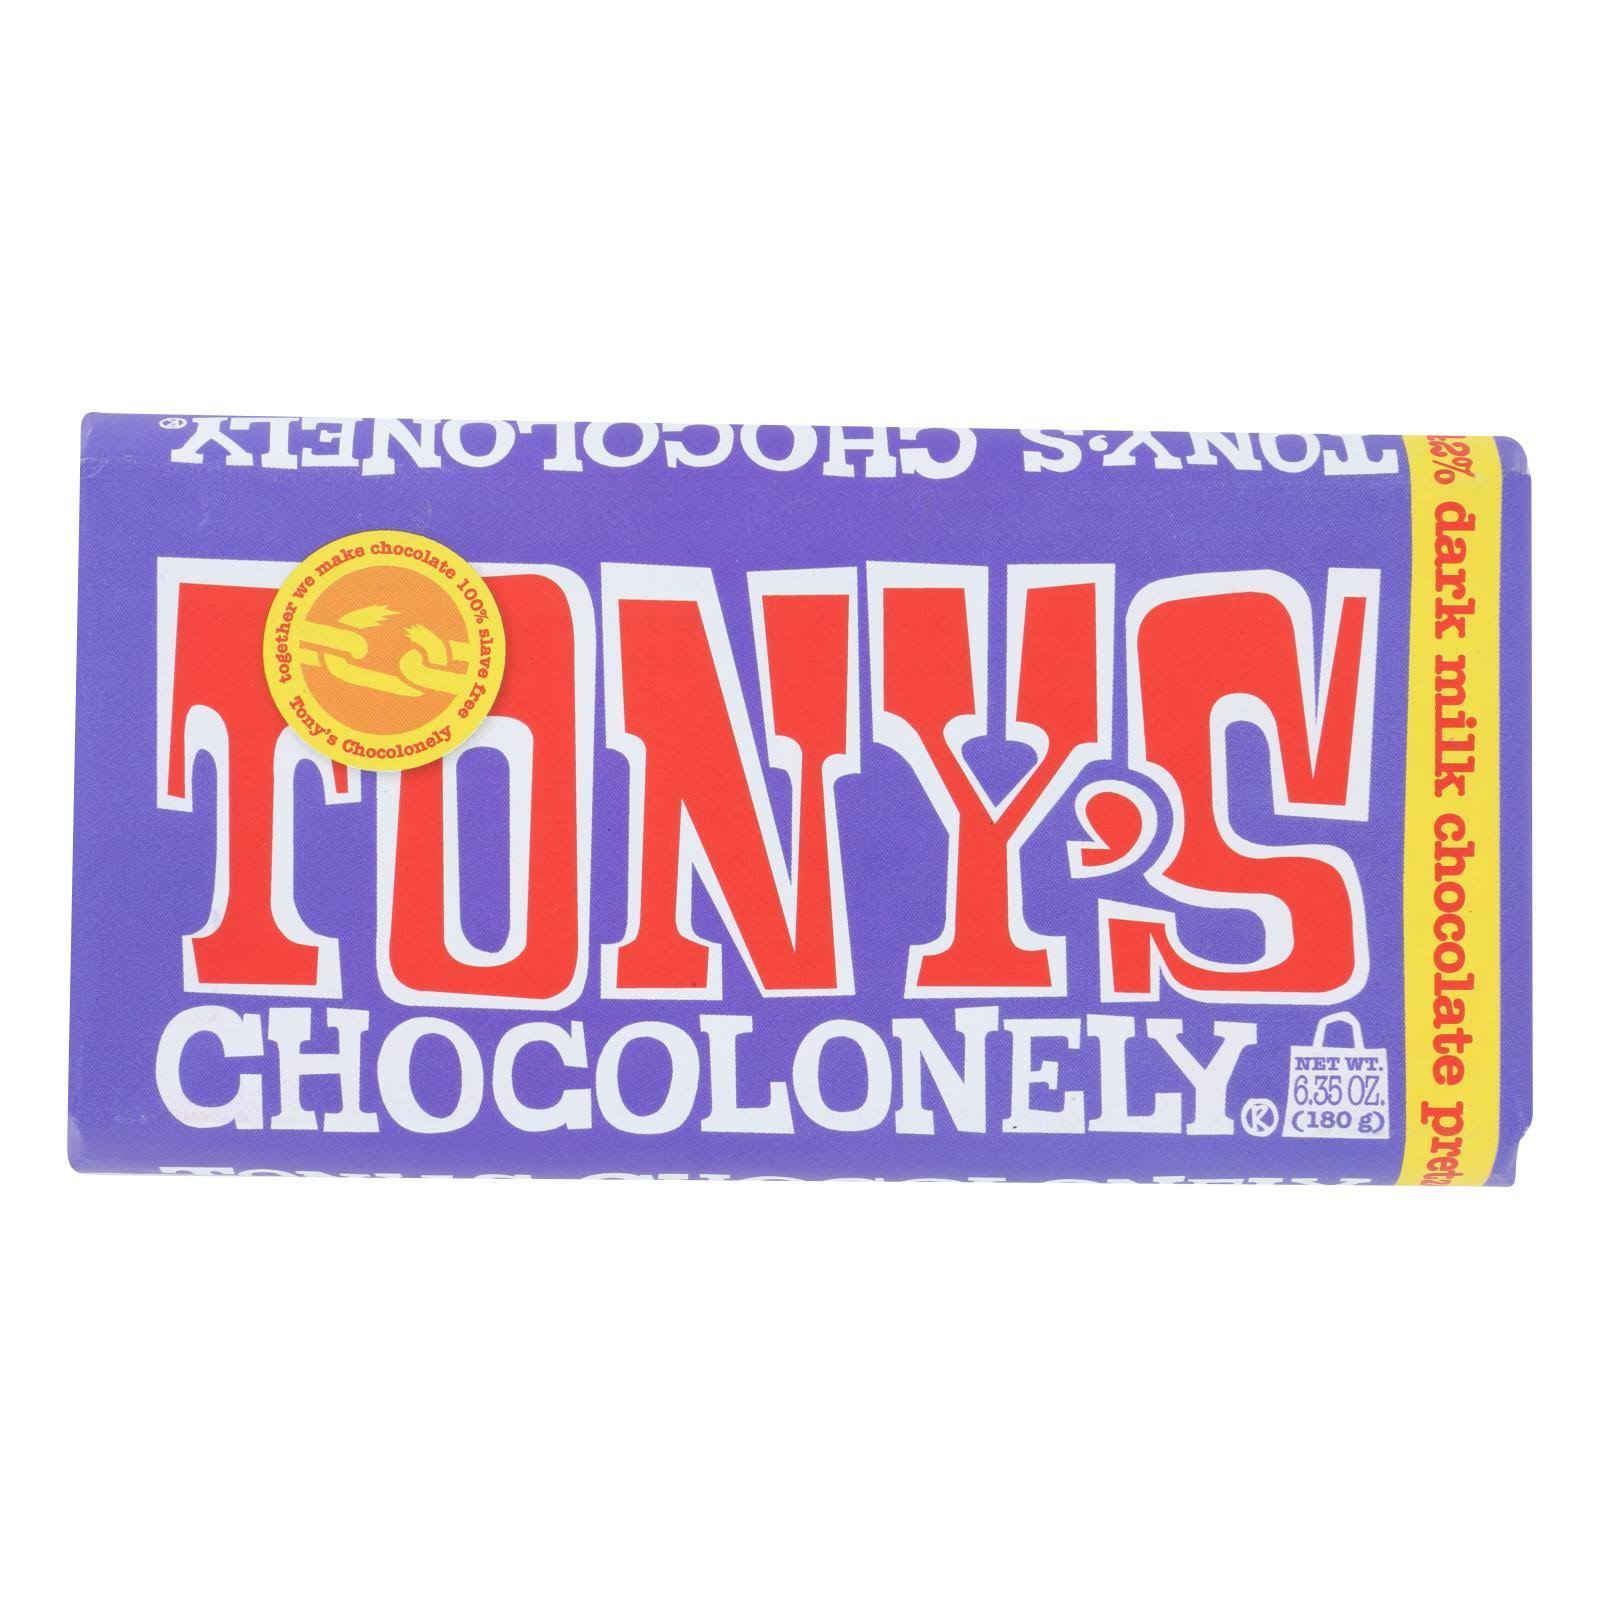 dTony's Chocolonely 42% Dark Milk Chocolate - 180g